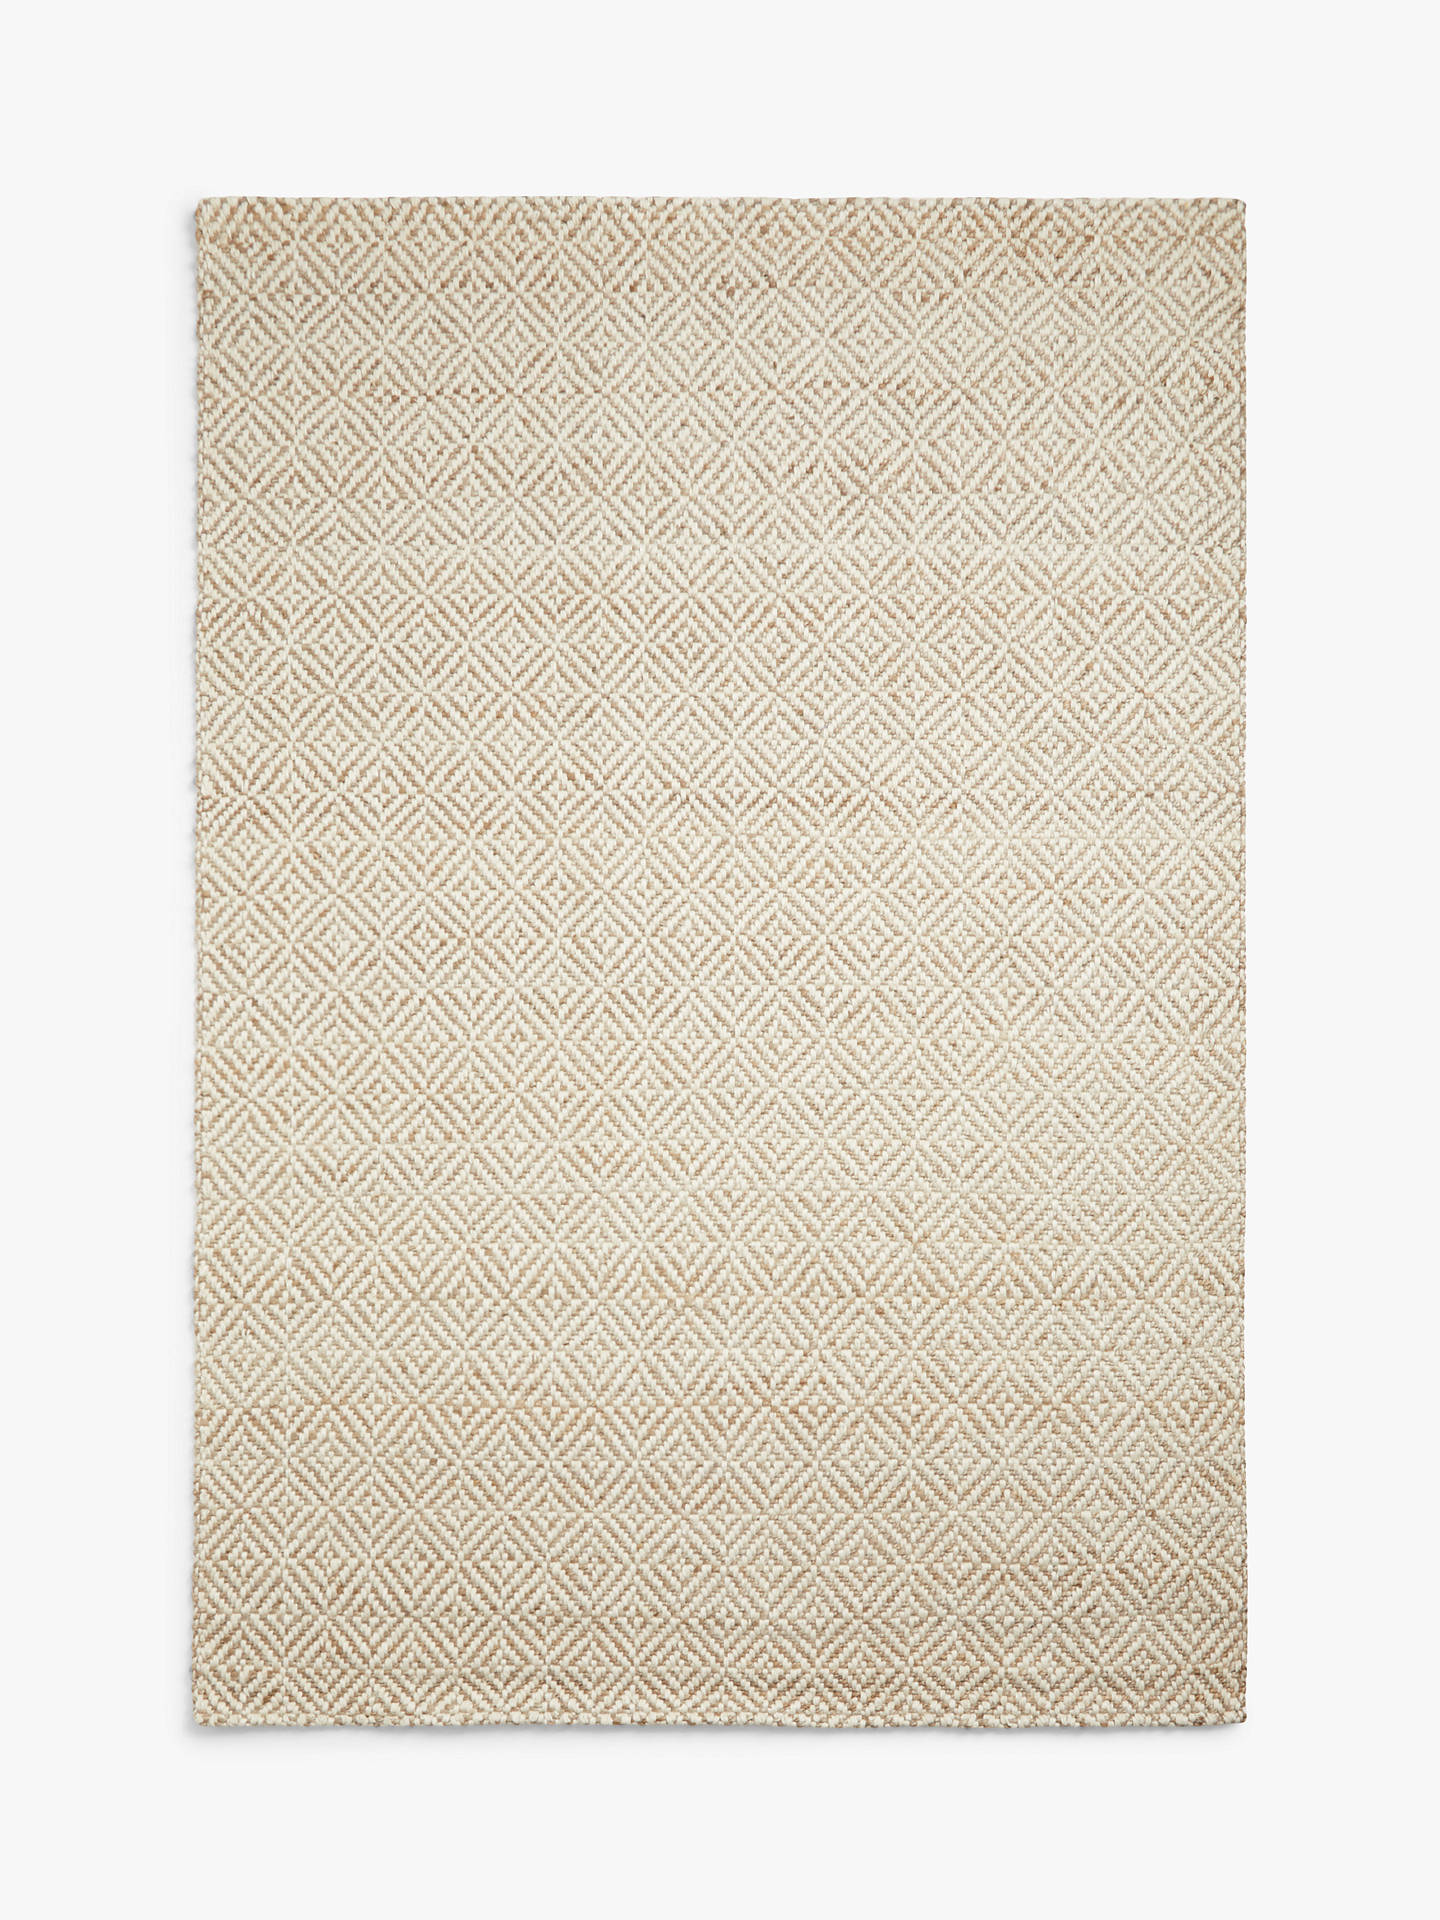 Buy John Lewis & Partners Lattice Rug, Lattice White / Natural, L150 x W90cm Online at johnlewis.com